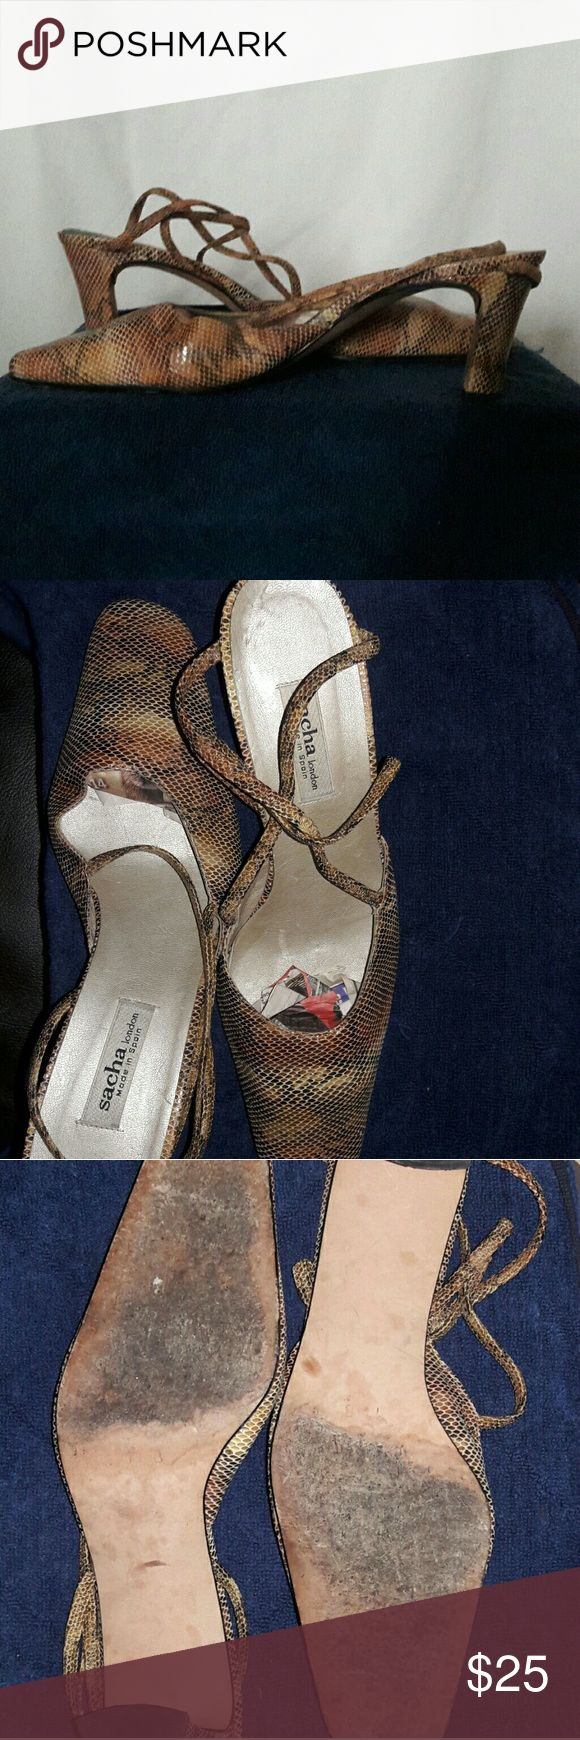 """SACHA snakeskin style strap shoes SACHA snake skin style shoes Two straps go across the foot. The shoes are in vibrant colors in browns with a light sheen. Heel 3"""" Very Good Condition SACHA Shoes Heels"""